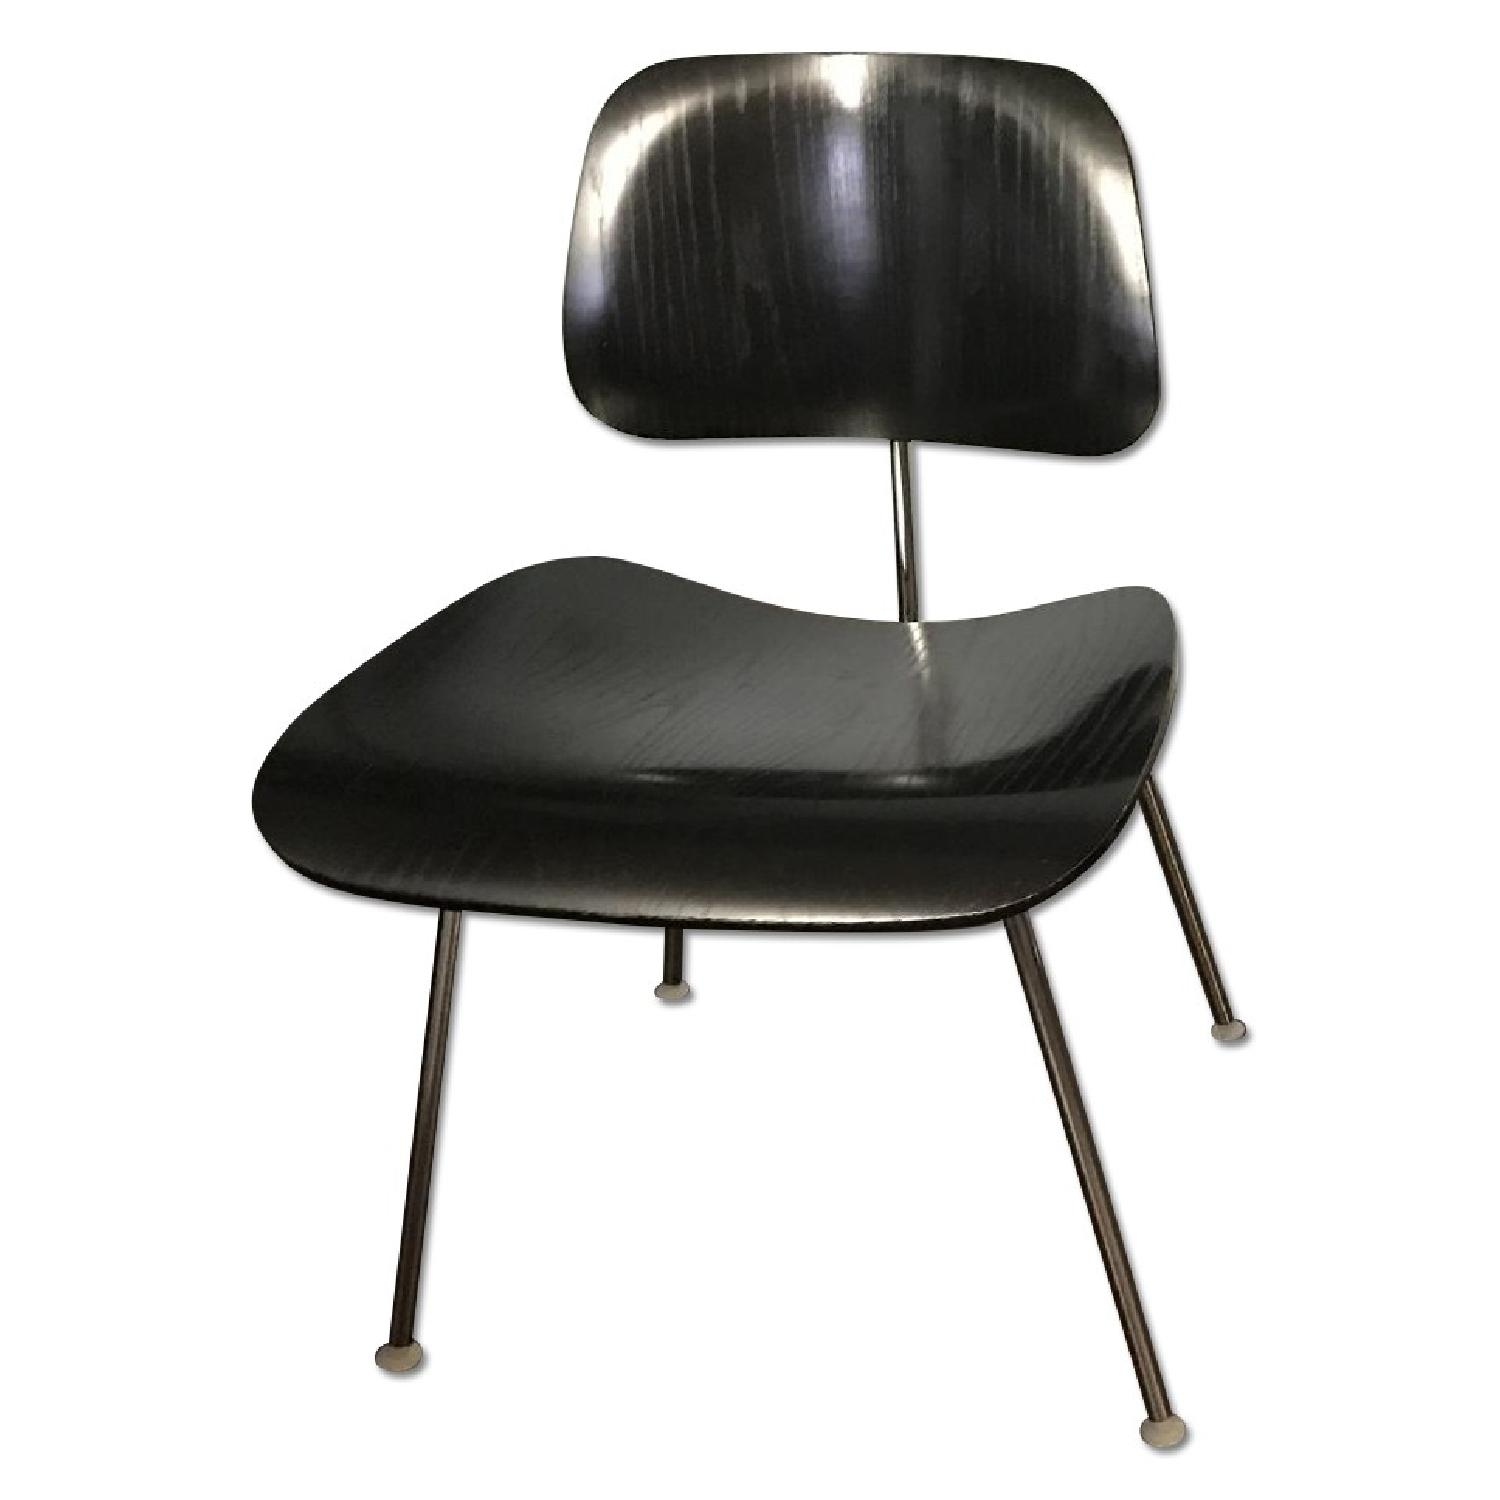 Herman Miller Eames Plywood Dining Chair - image-0